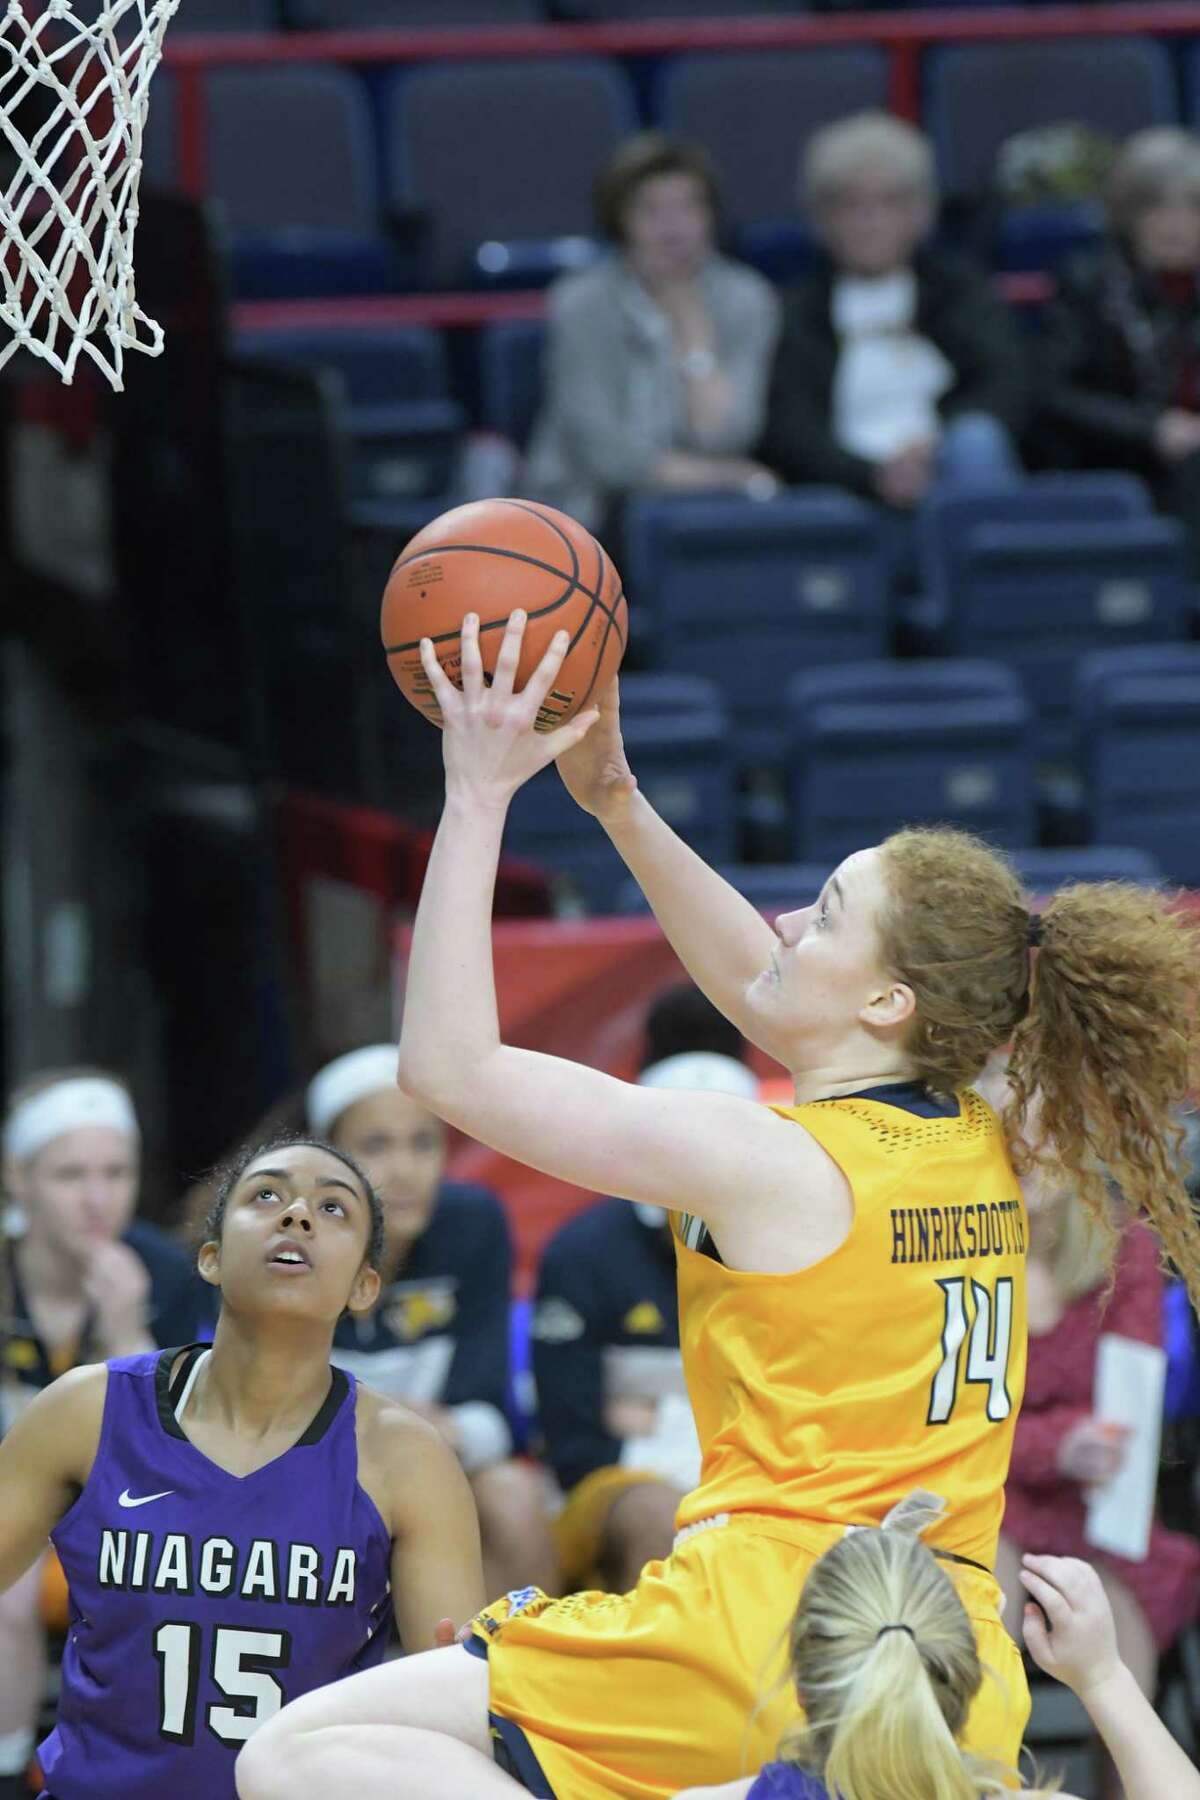 Sara Hinriksdottir of Canisius drives to the basket through Niagara players during their MAAC Basketball Tournament game at the Times Union Center on Thursday, March 2, 2017, in Albany, N.Y. (Paul Buckowski / Times Union)